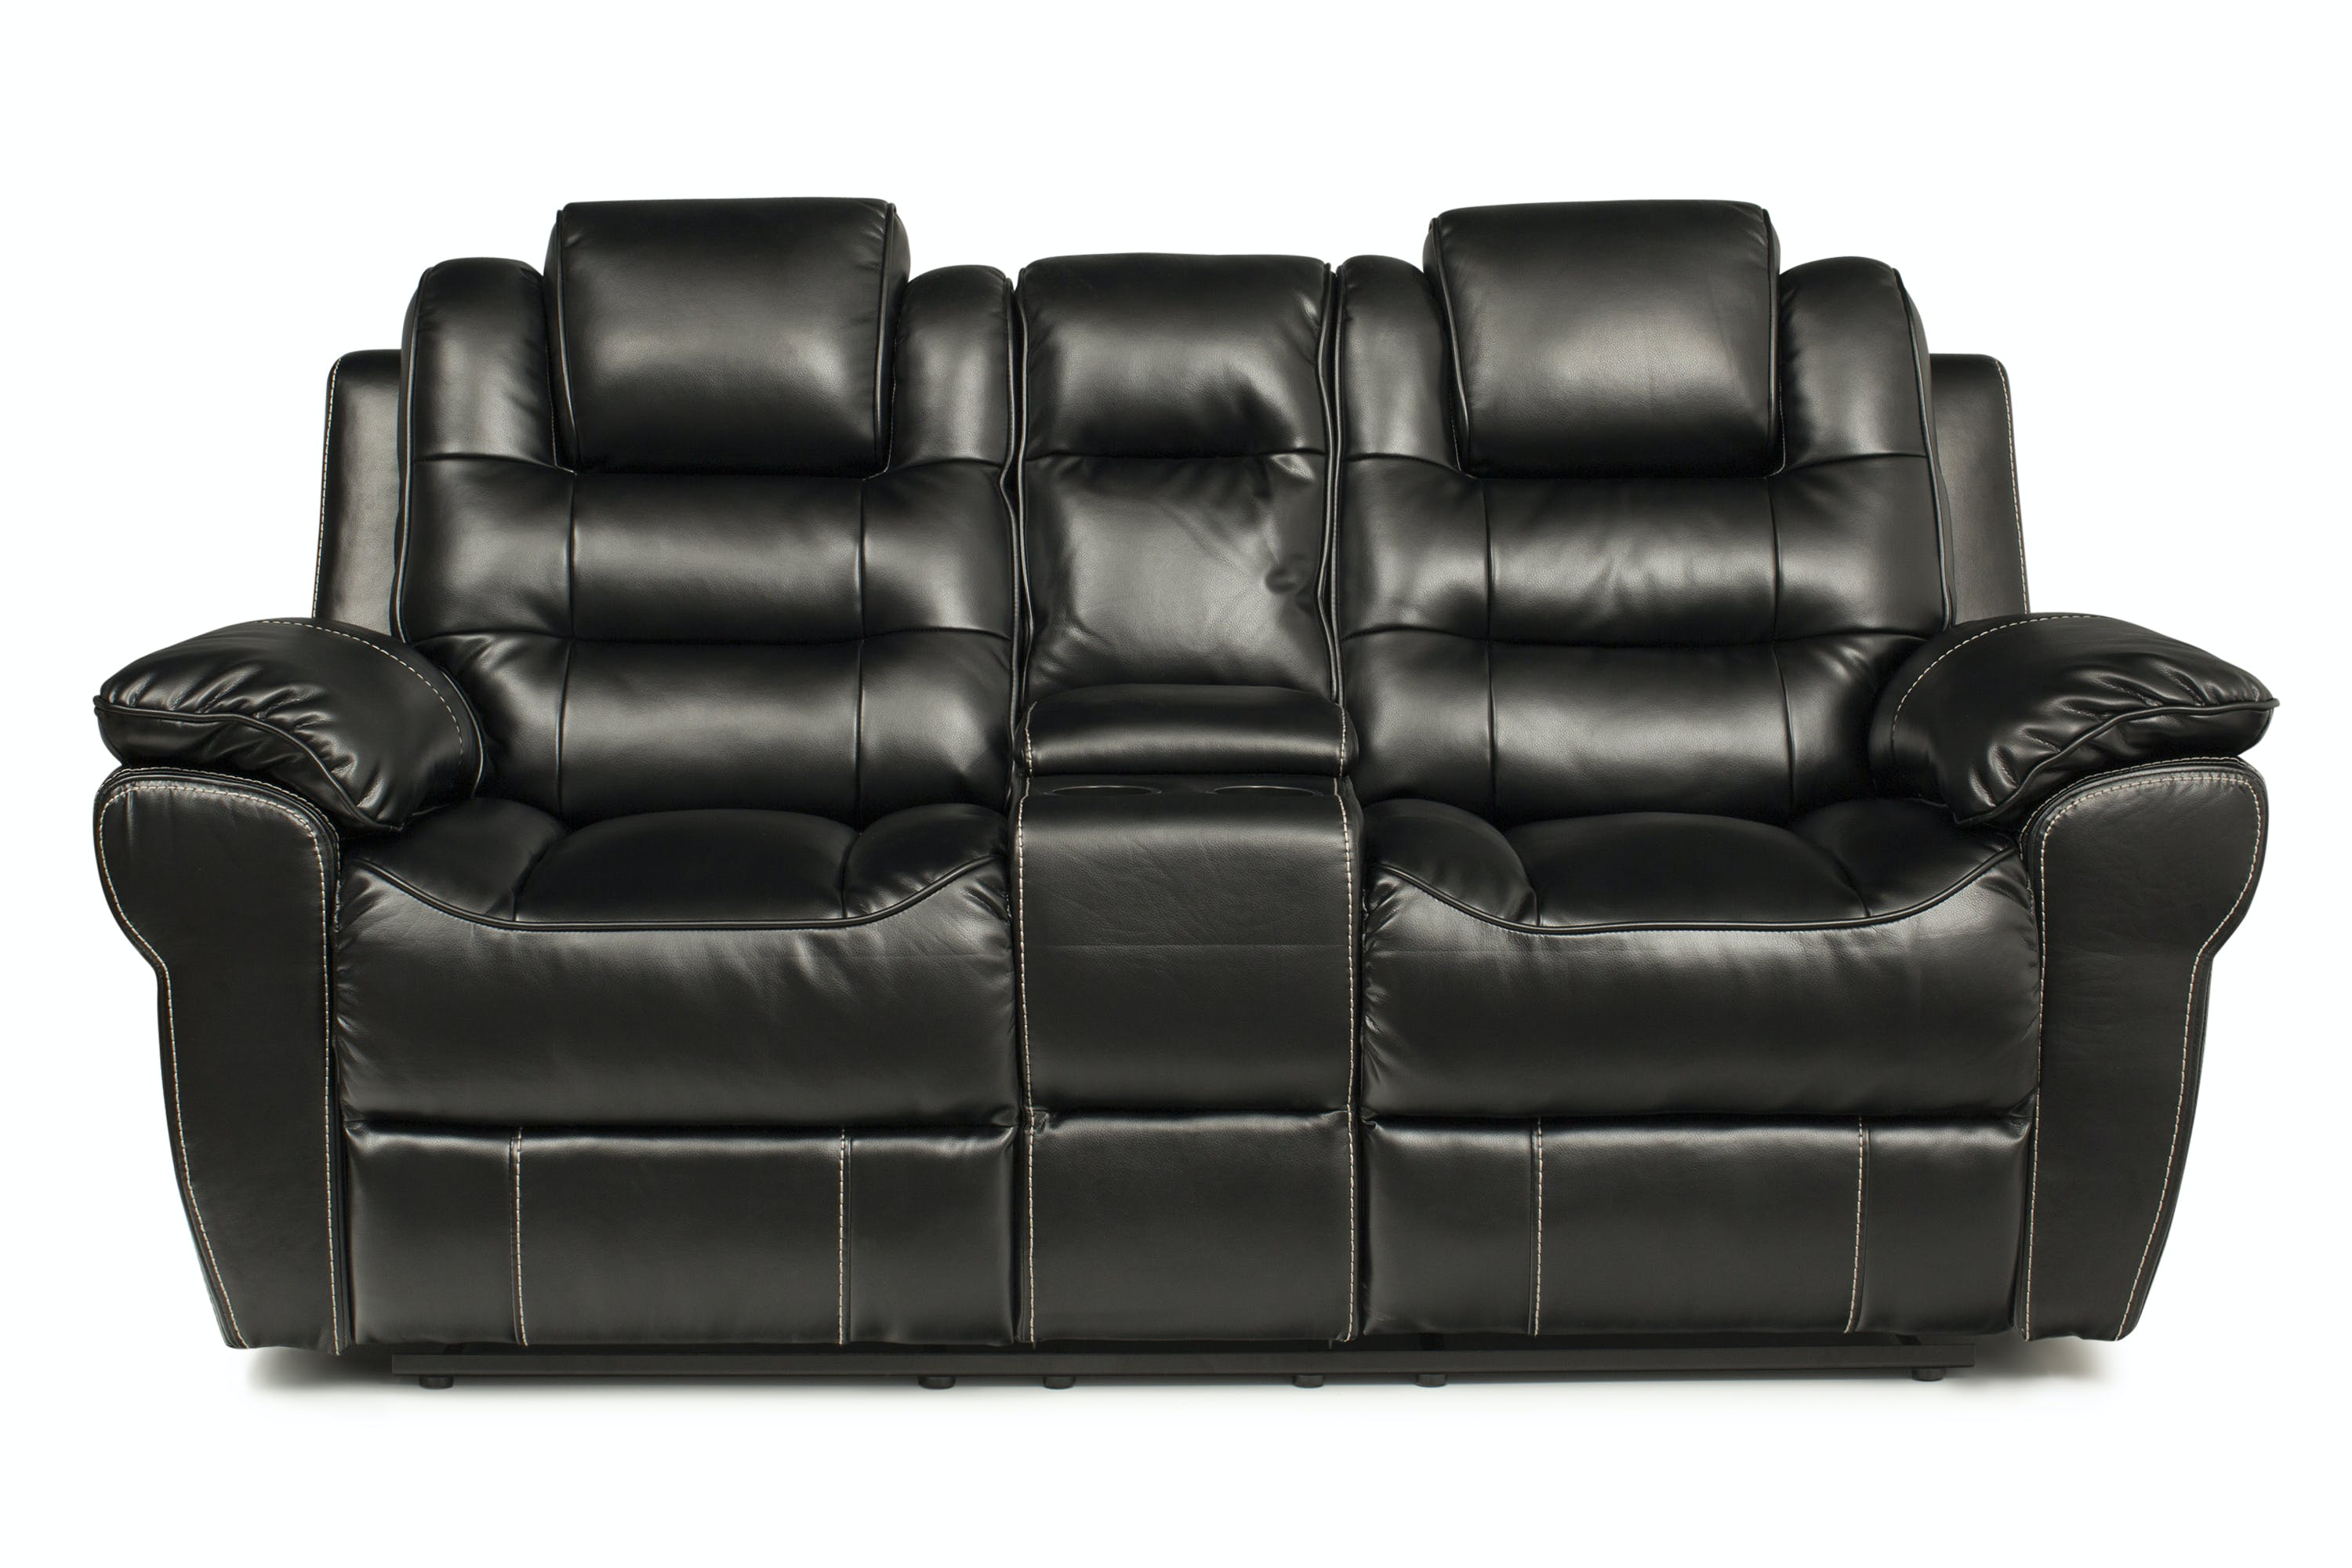 Recliner Sofas Harvey Norman Ireland